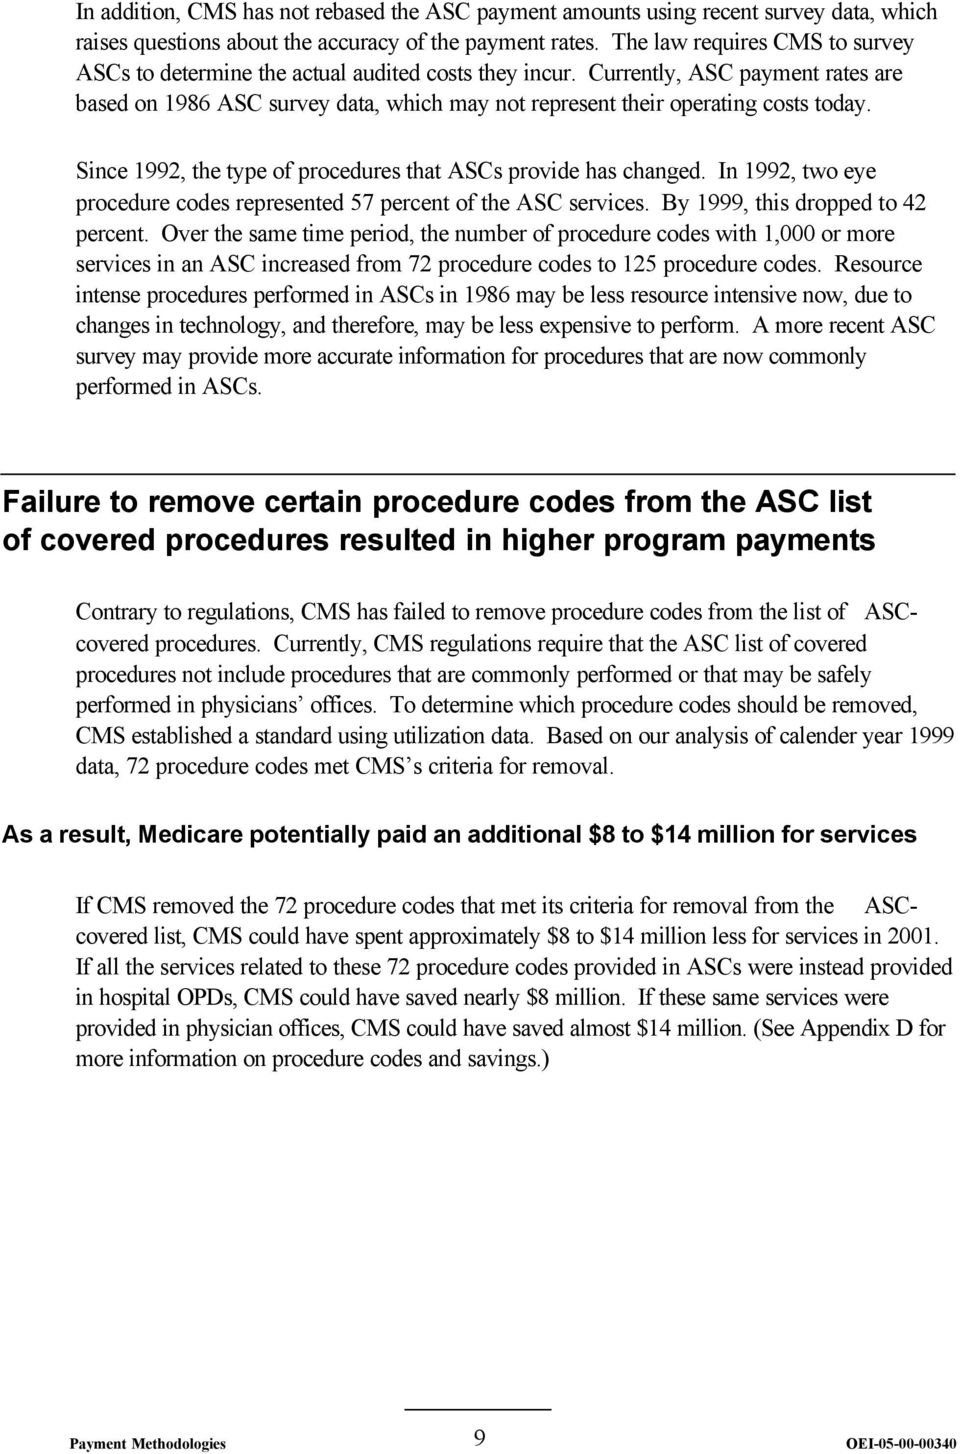 Currently, ASC payment rates are based on 1986 ASC survey data, which may not represent their operating costs today. Since 1992, the type of procedures that ASCs provide has changed.